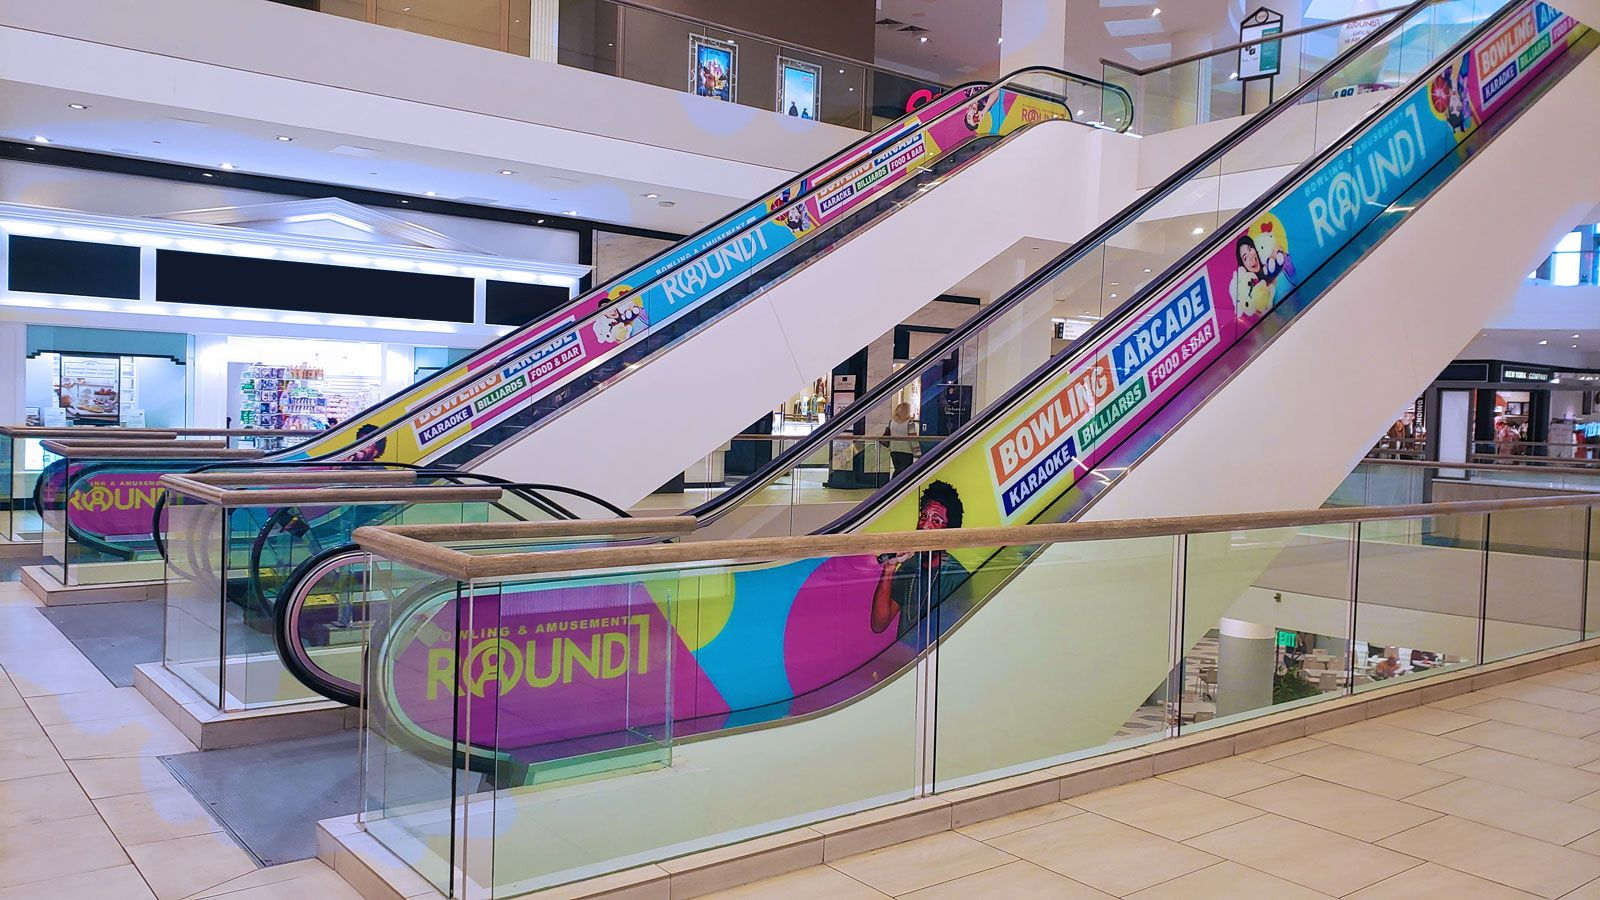 Bowling arcade escalator decals